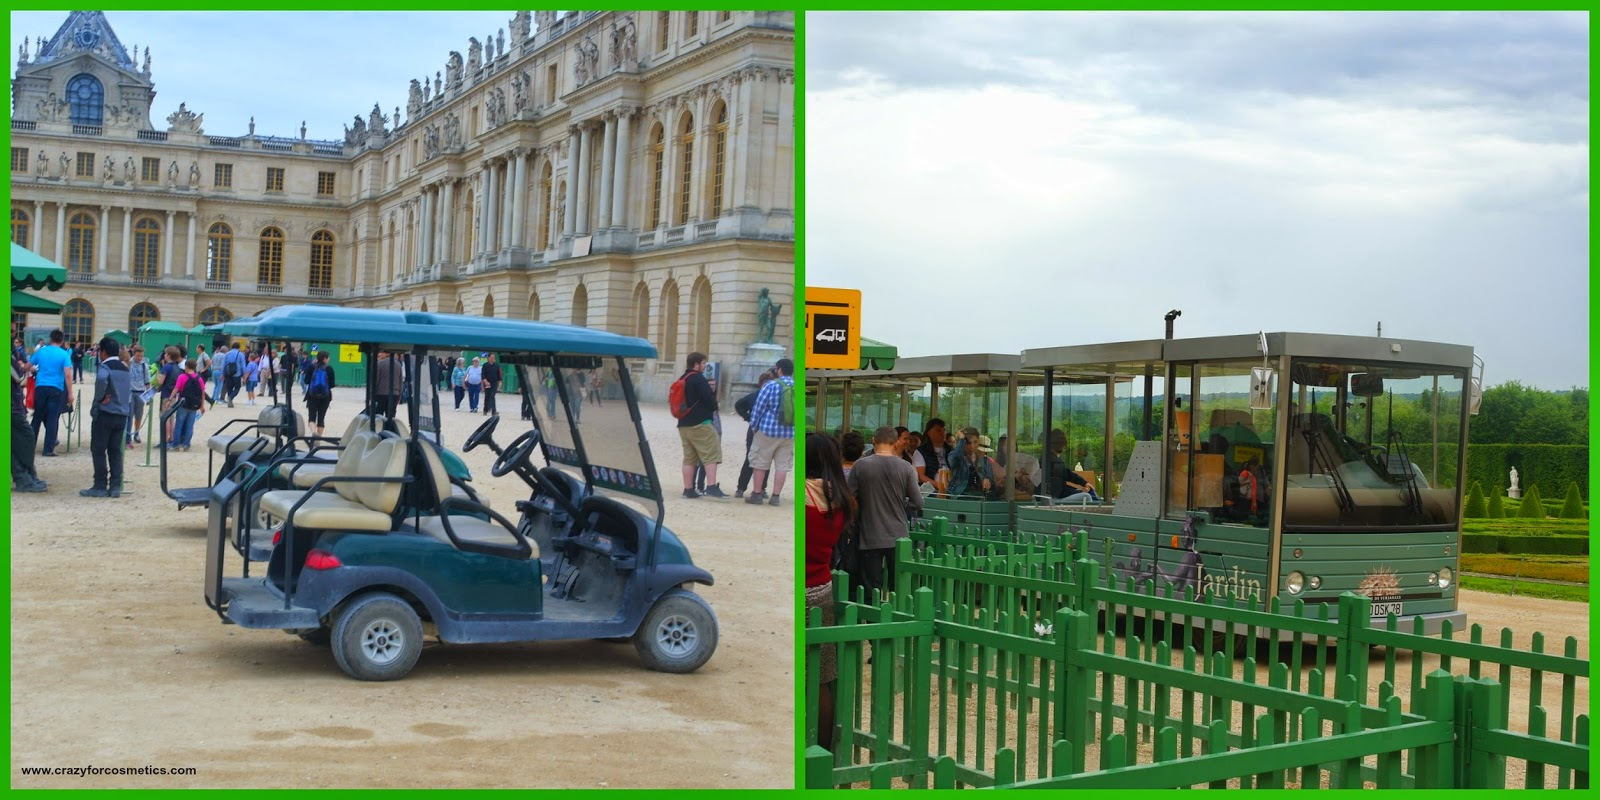 palace of versailles gardens photos